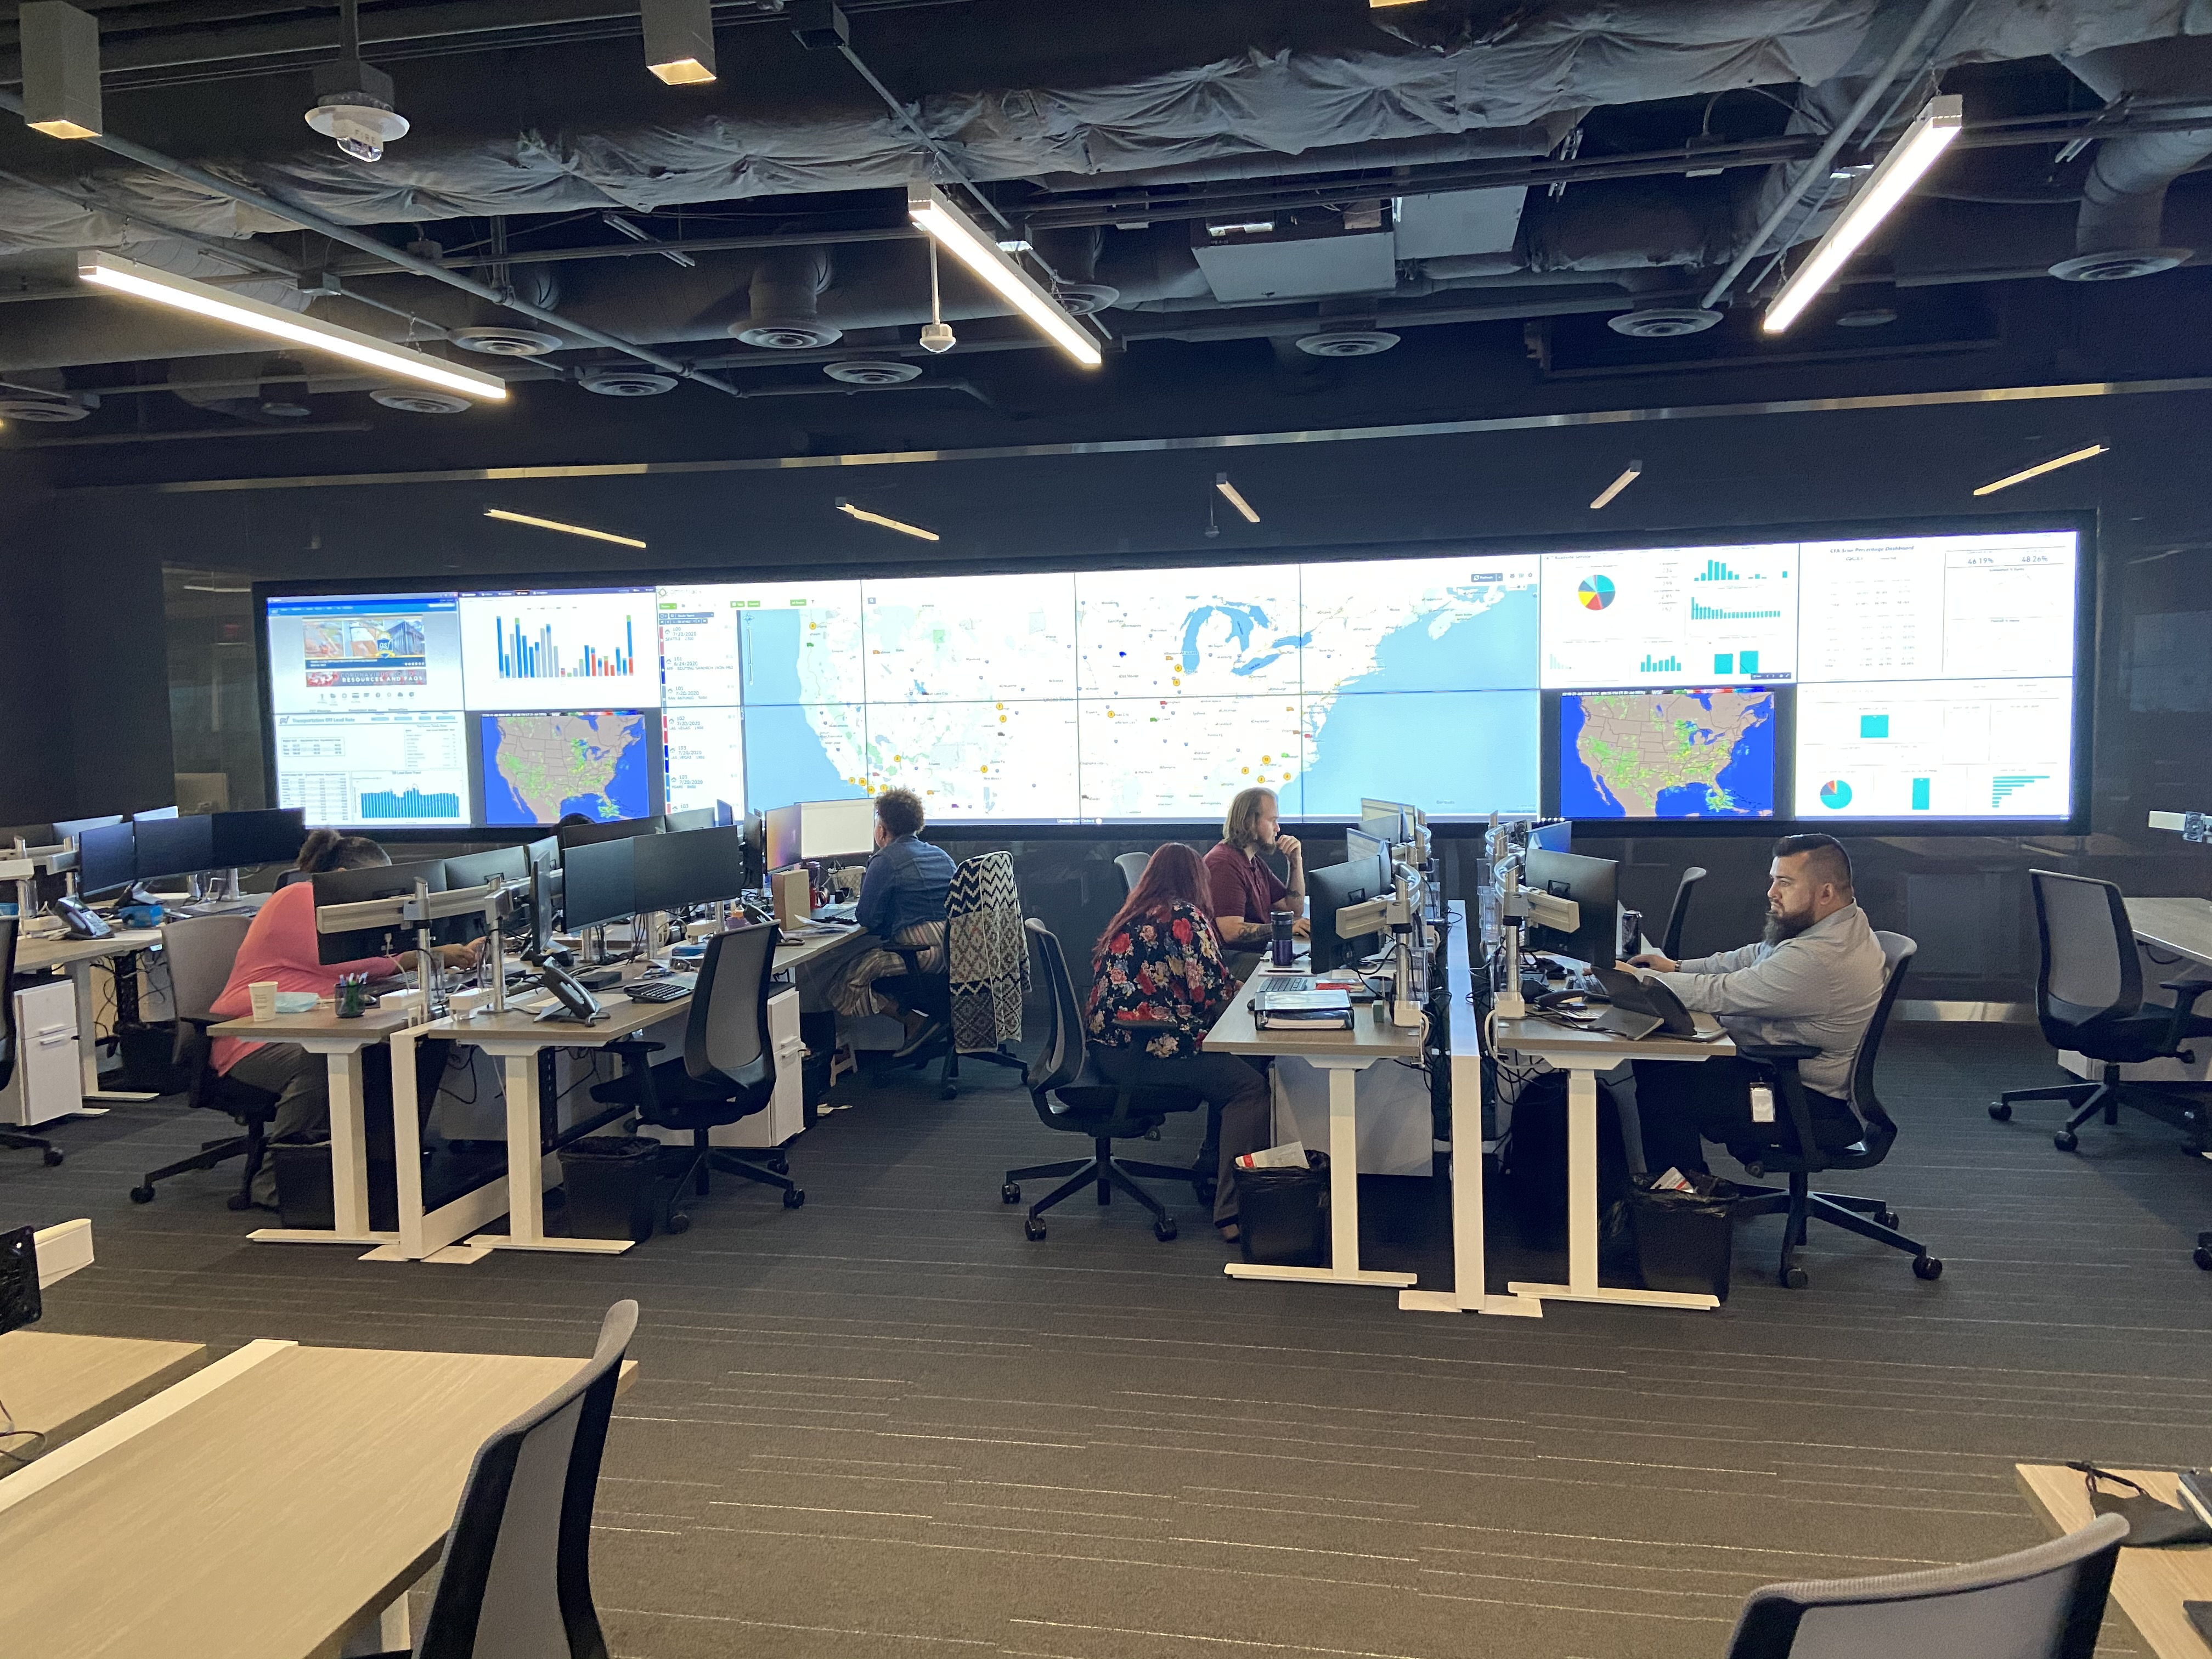 Inside an office, there are rows of employees sitting as desks looking at their computers. There are 16 tv screens at the front with various kinds of information on them